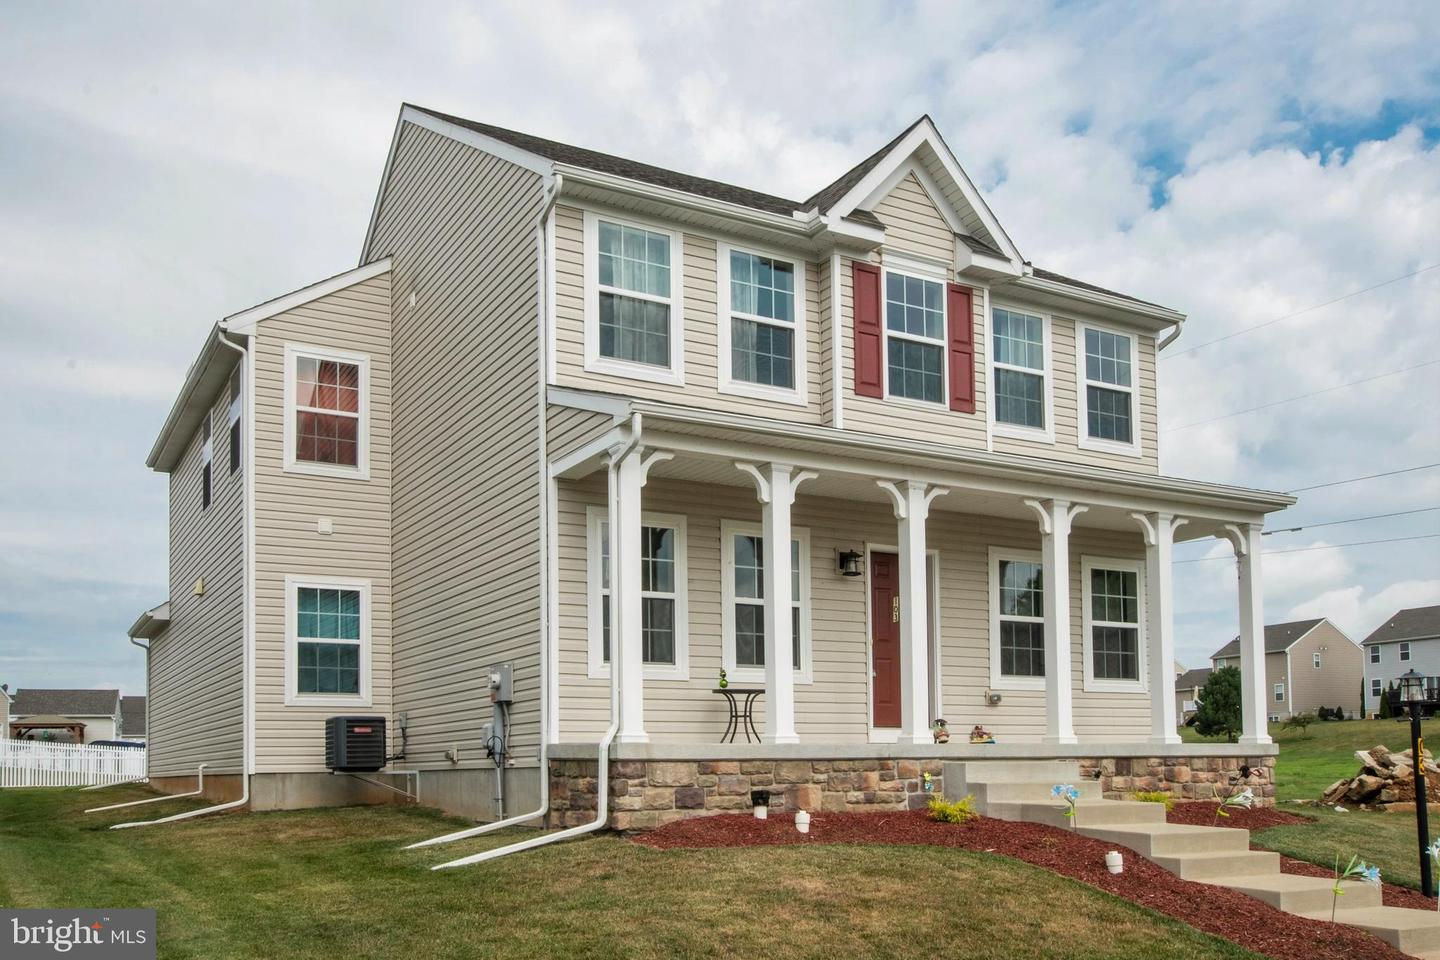 Single Family Homes for Sale at 103 HONEYSUCKLE DRIVE Marietta, Pennsylvania 17547 United States